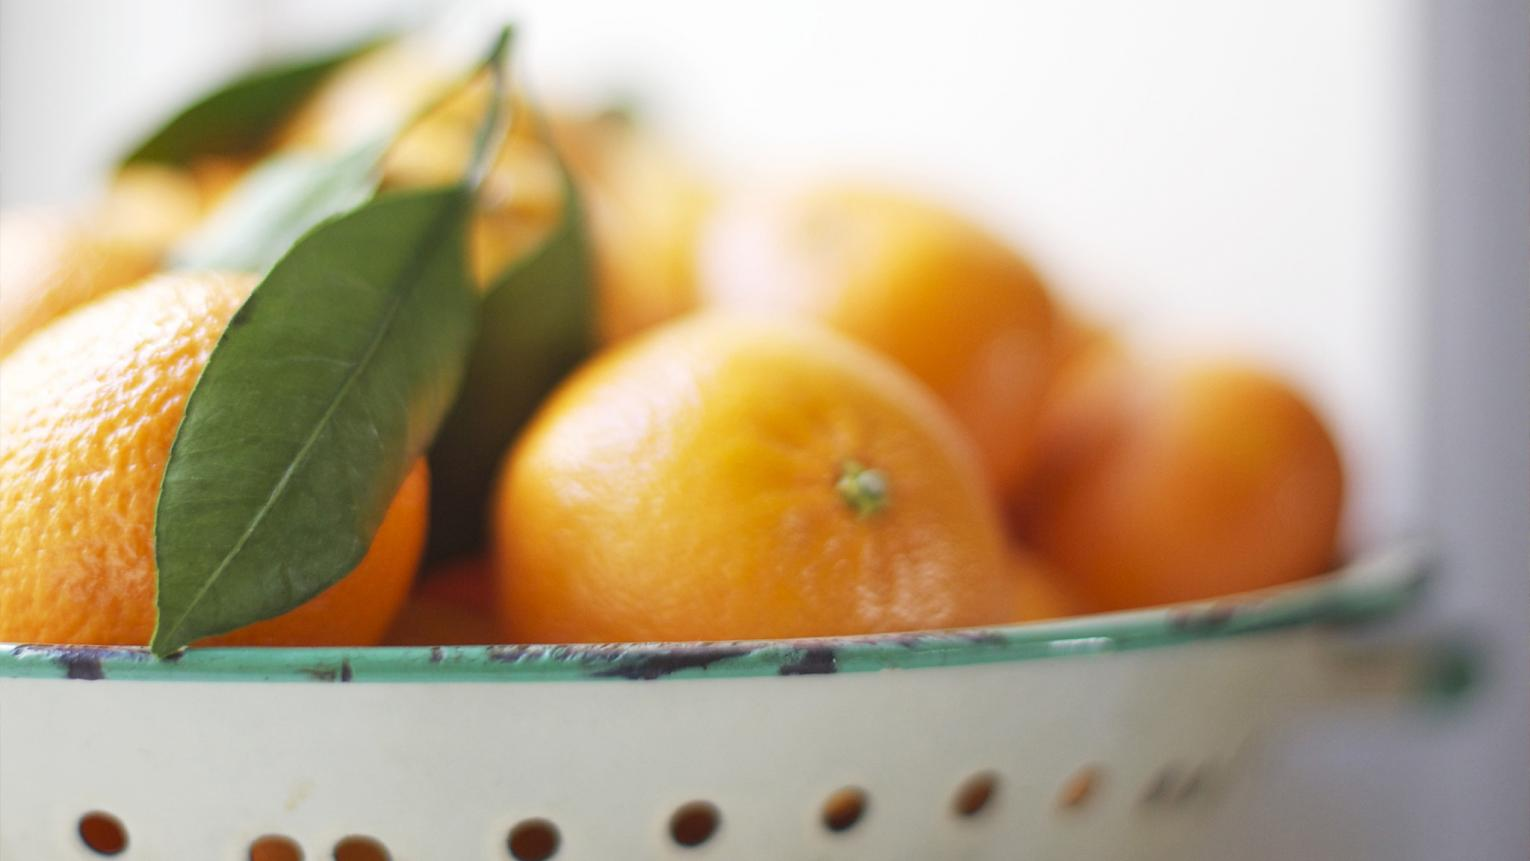 Fresh oranges in a bowl.